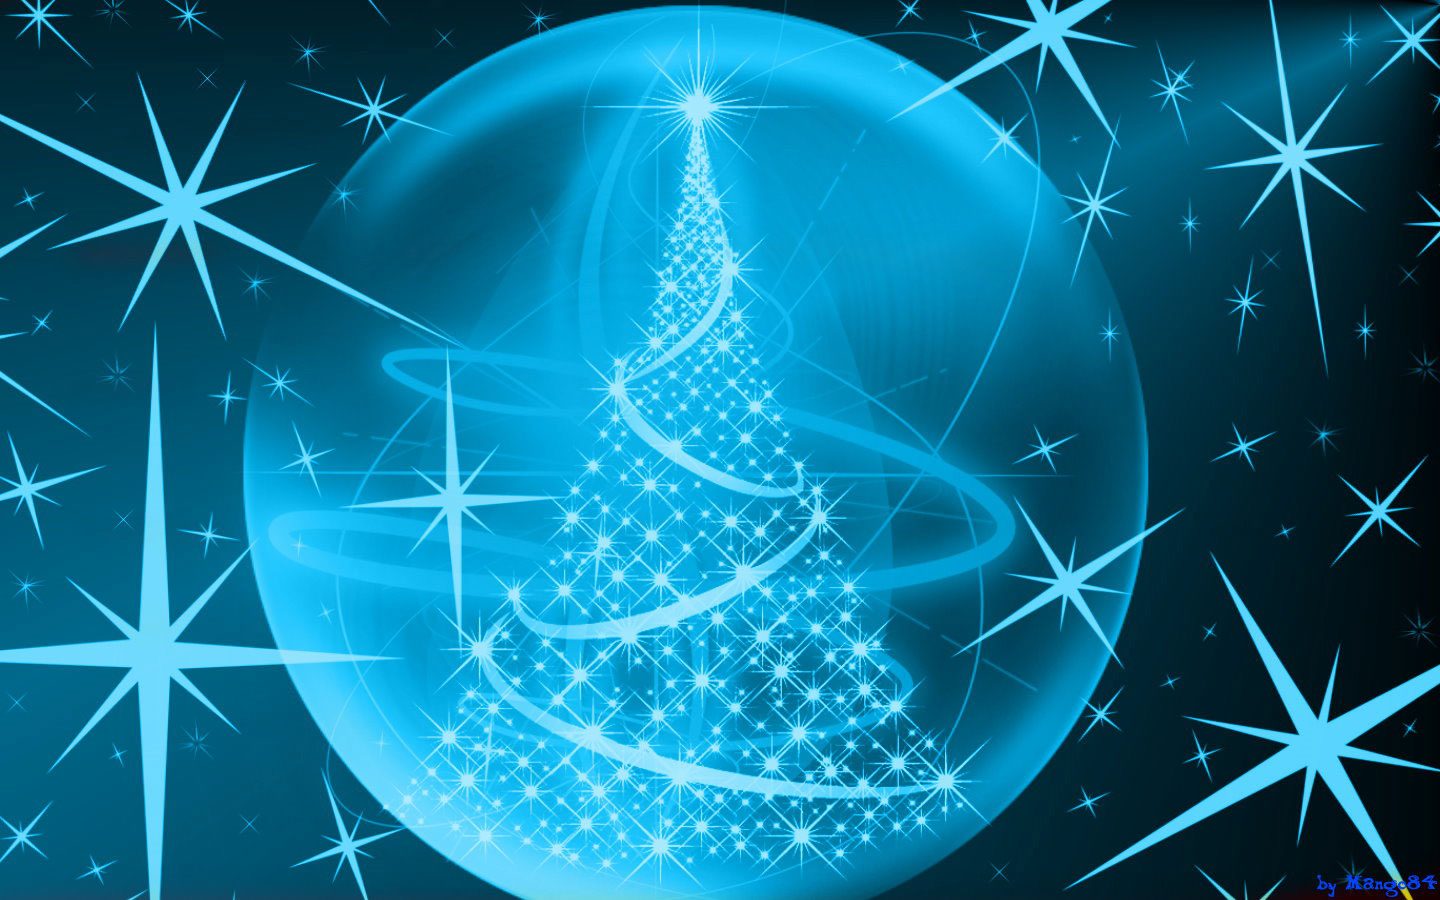 Reses: Christmas Tree Wallpapers